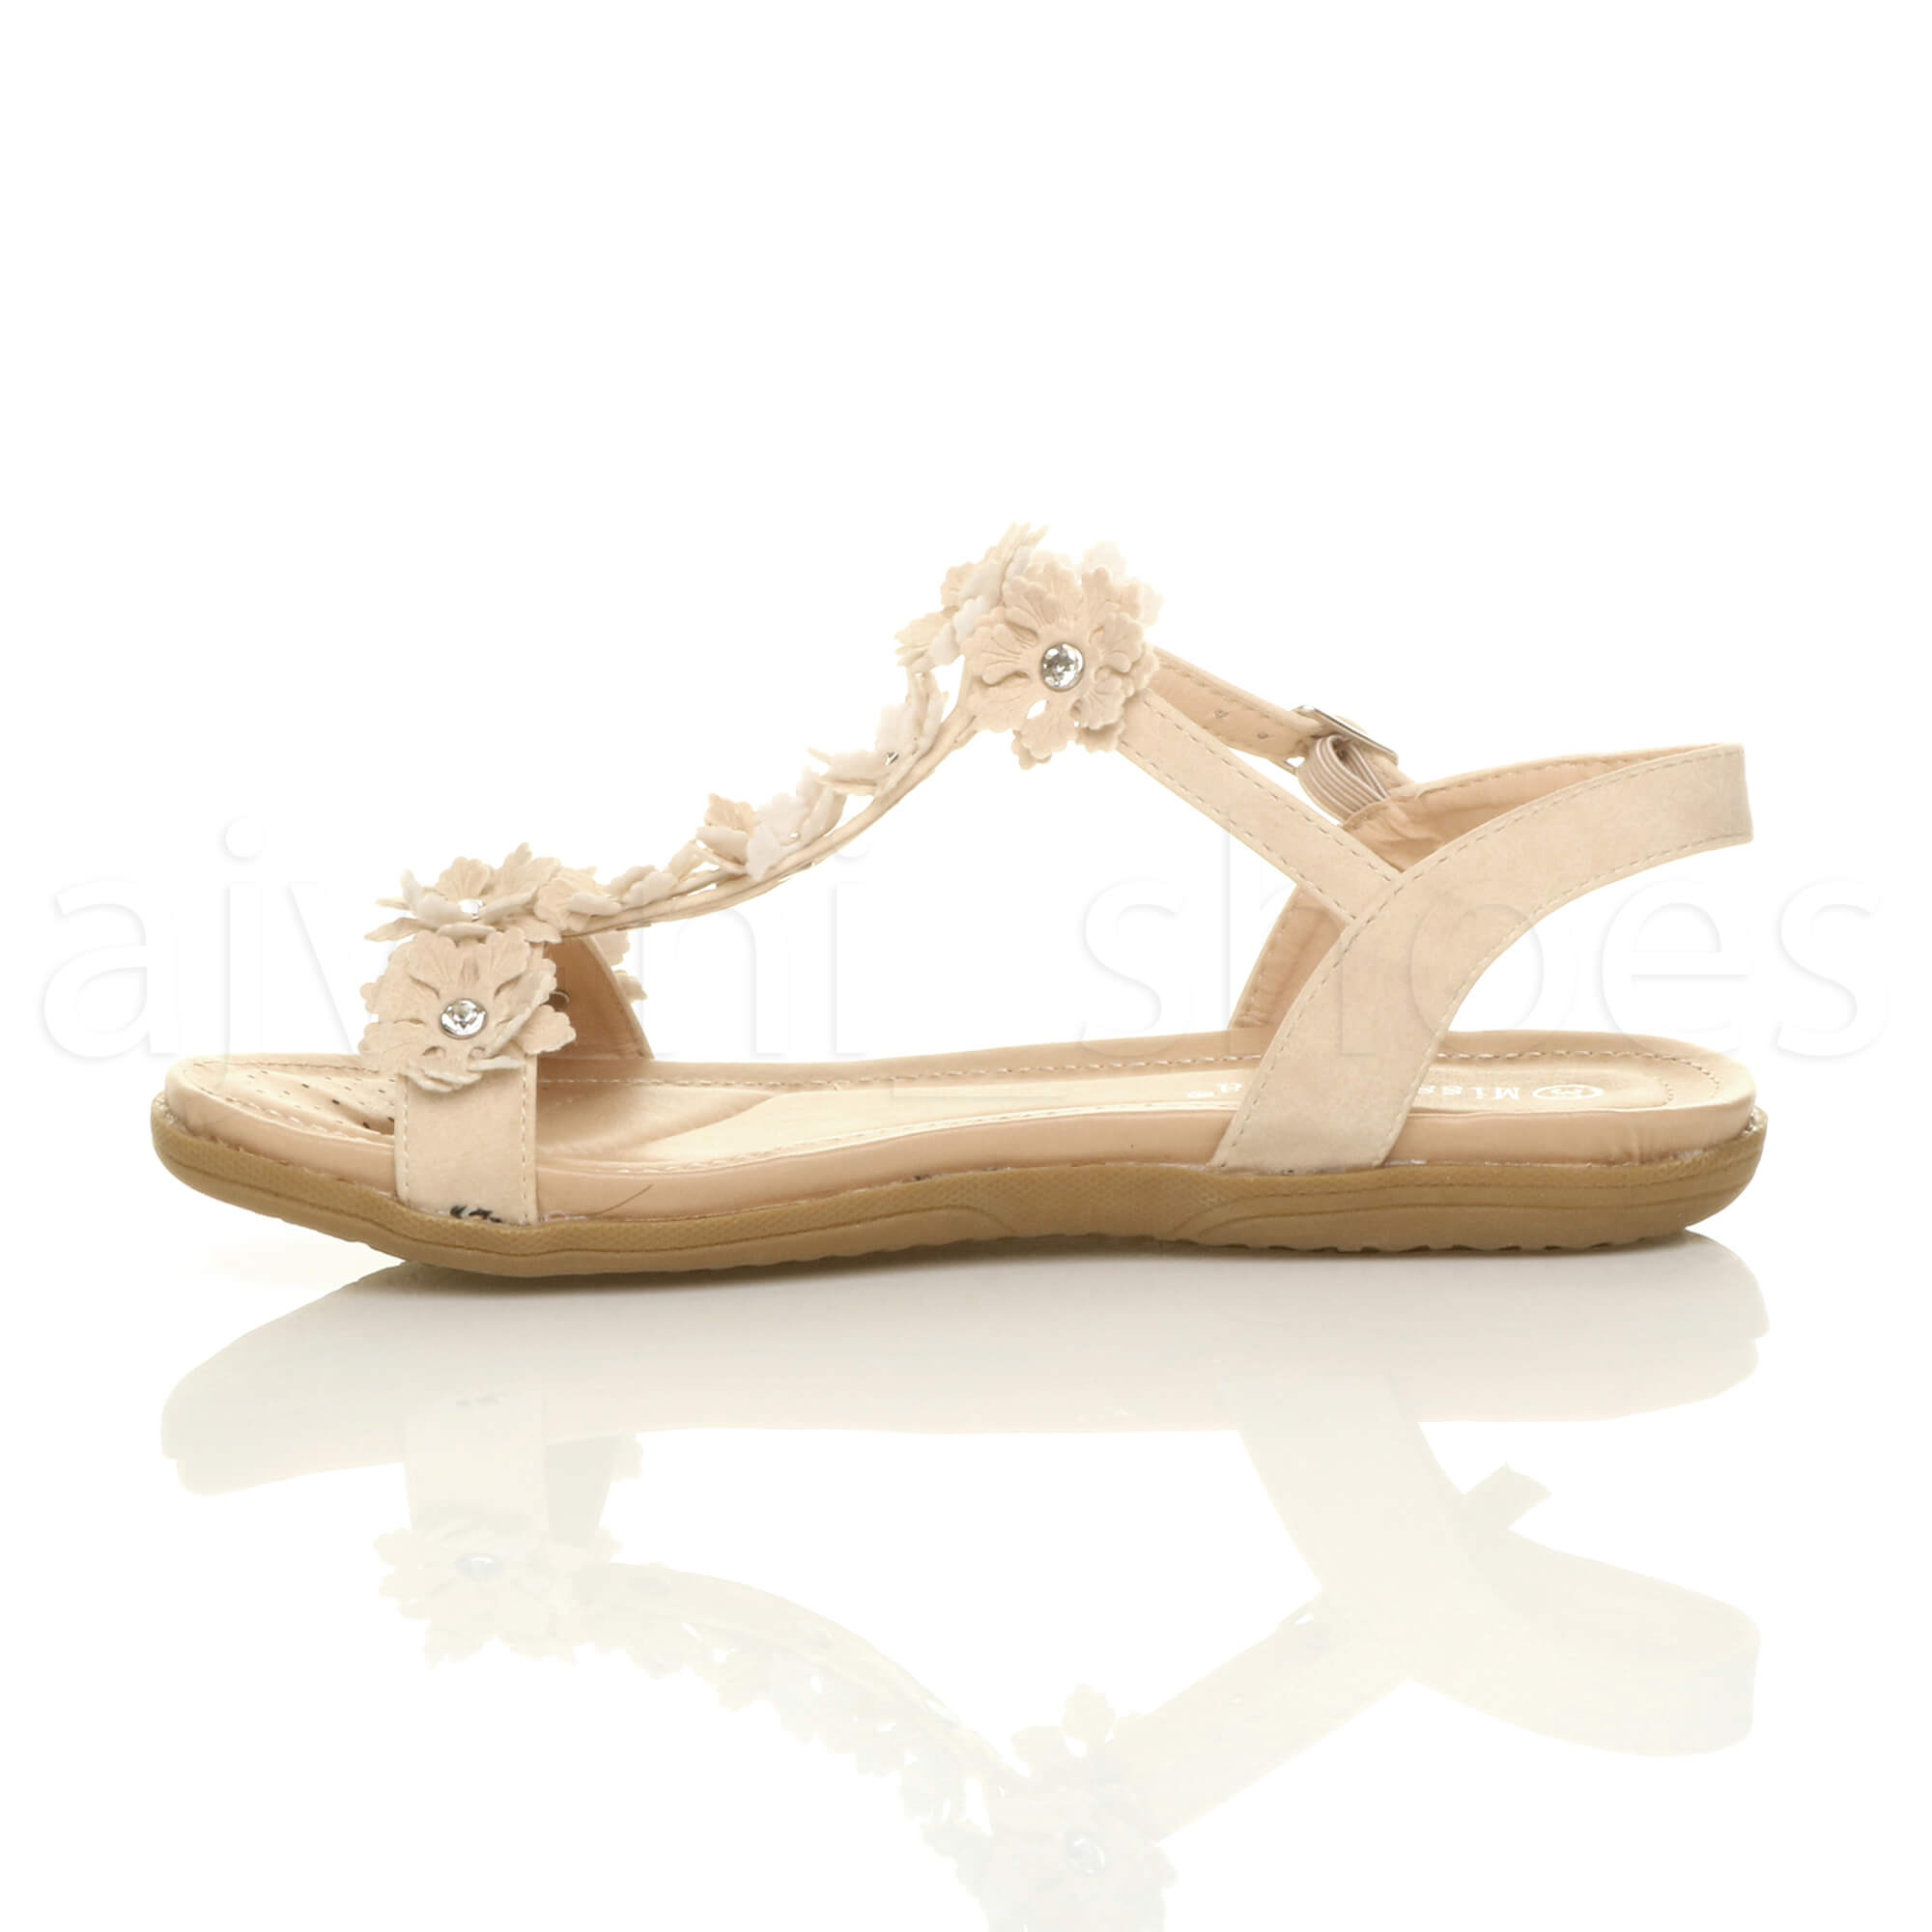 WOMENS-LADIES-FLAT-PADDED-COMFORT-T-BAR-BUCKLE-FLOWER-DIAMANTE-SANDALS-SIZE